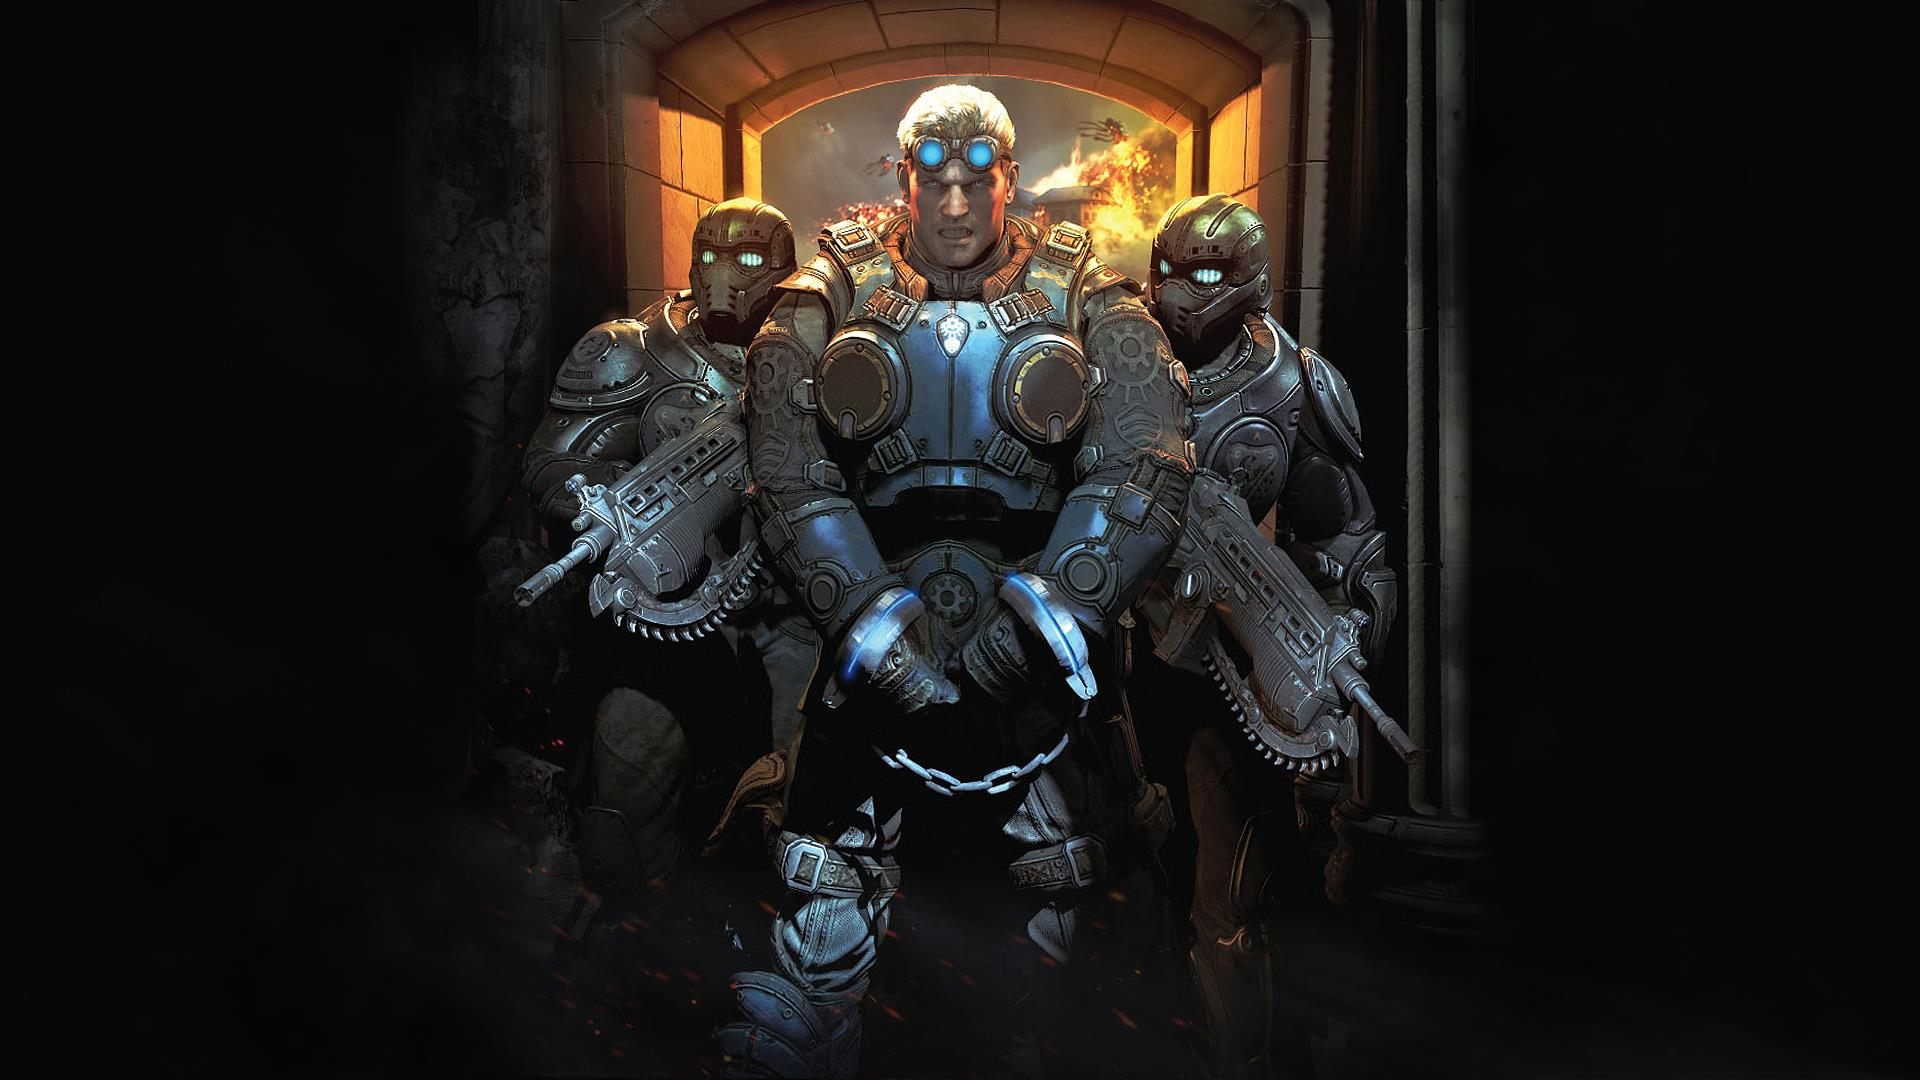 wallpapers of Gears of War Judgement You are downloading Gears of War 1920x1080